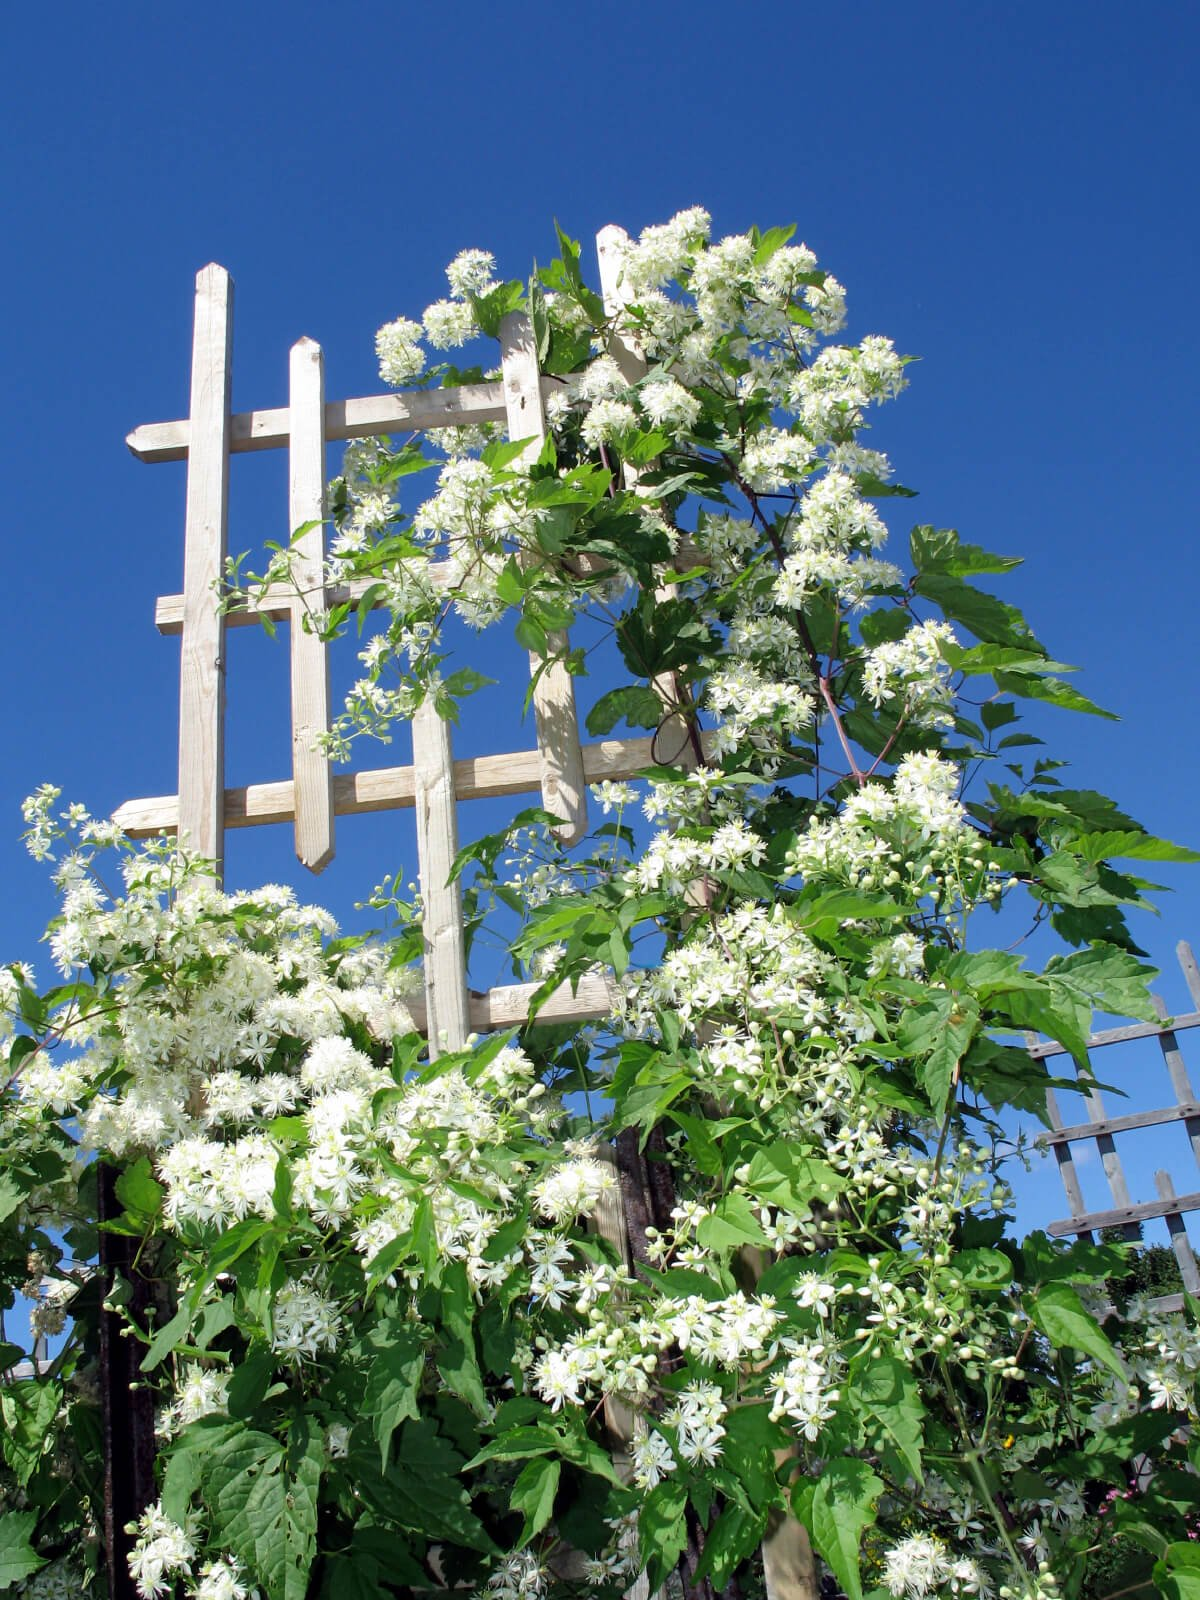 A wooden trellis supports grapevines.